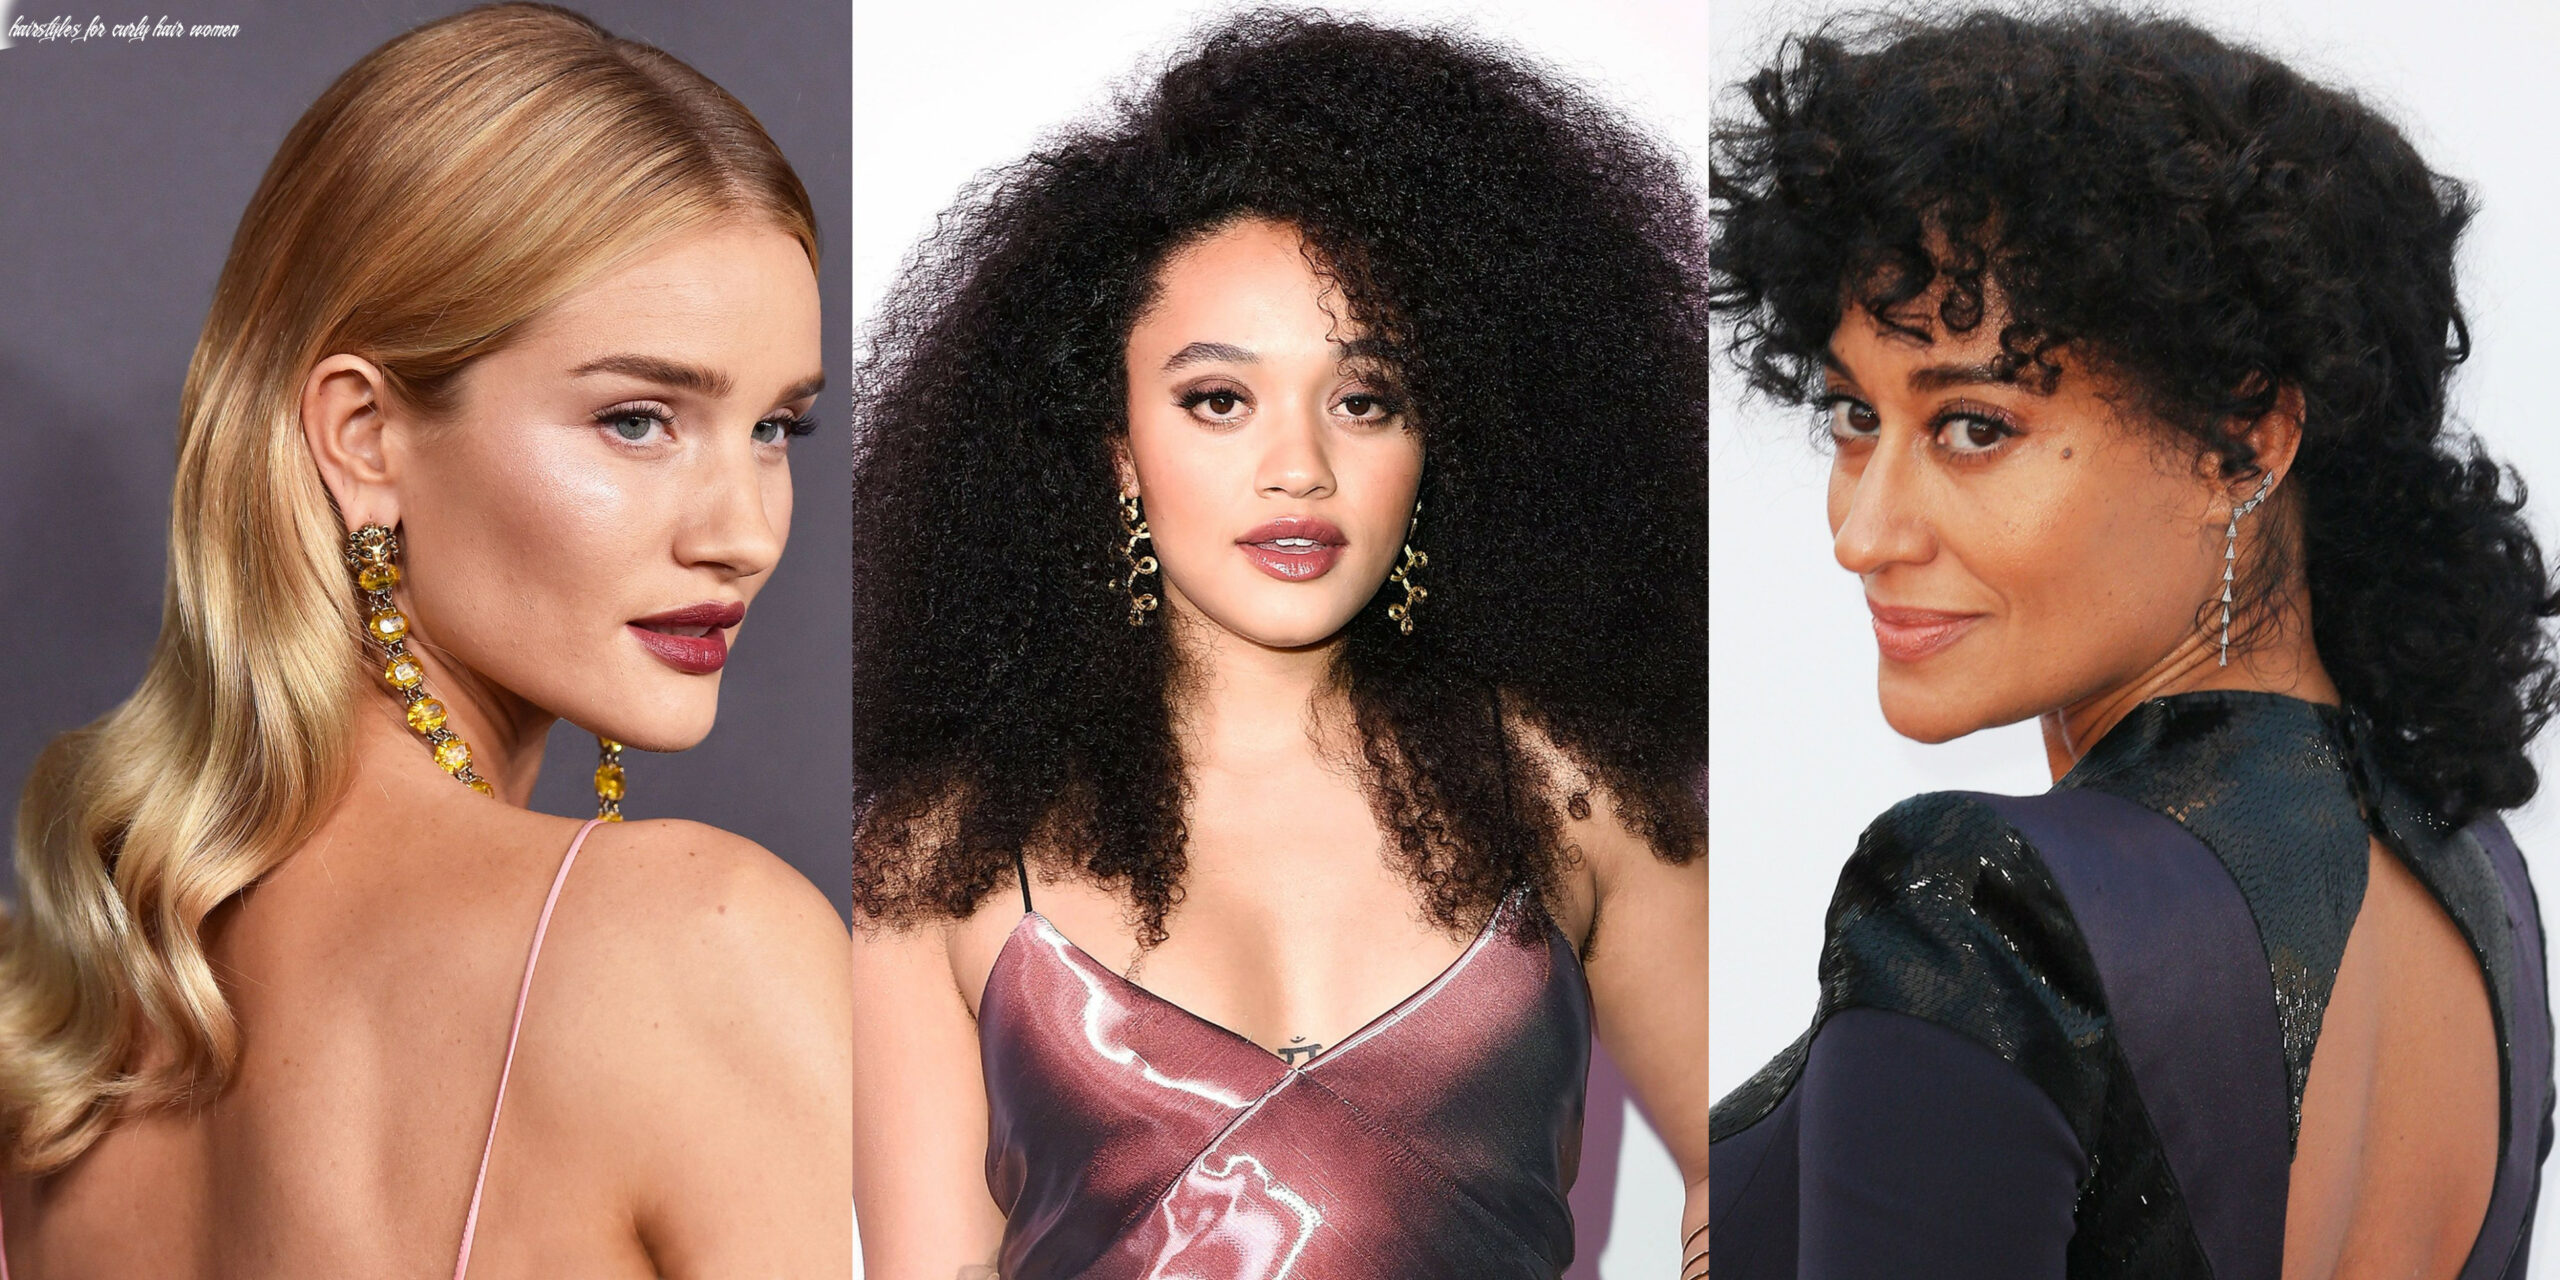 12 Best Curly Hairstyles of 12 - Curly Hair Photos